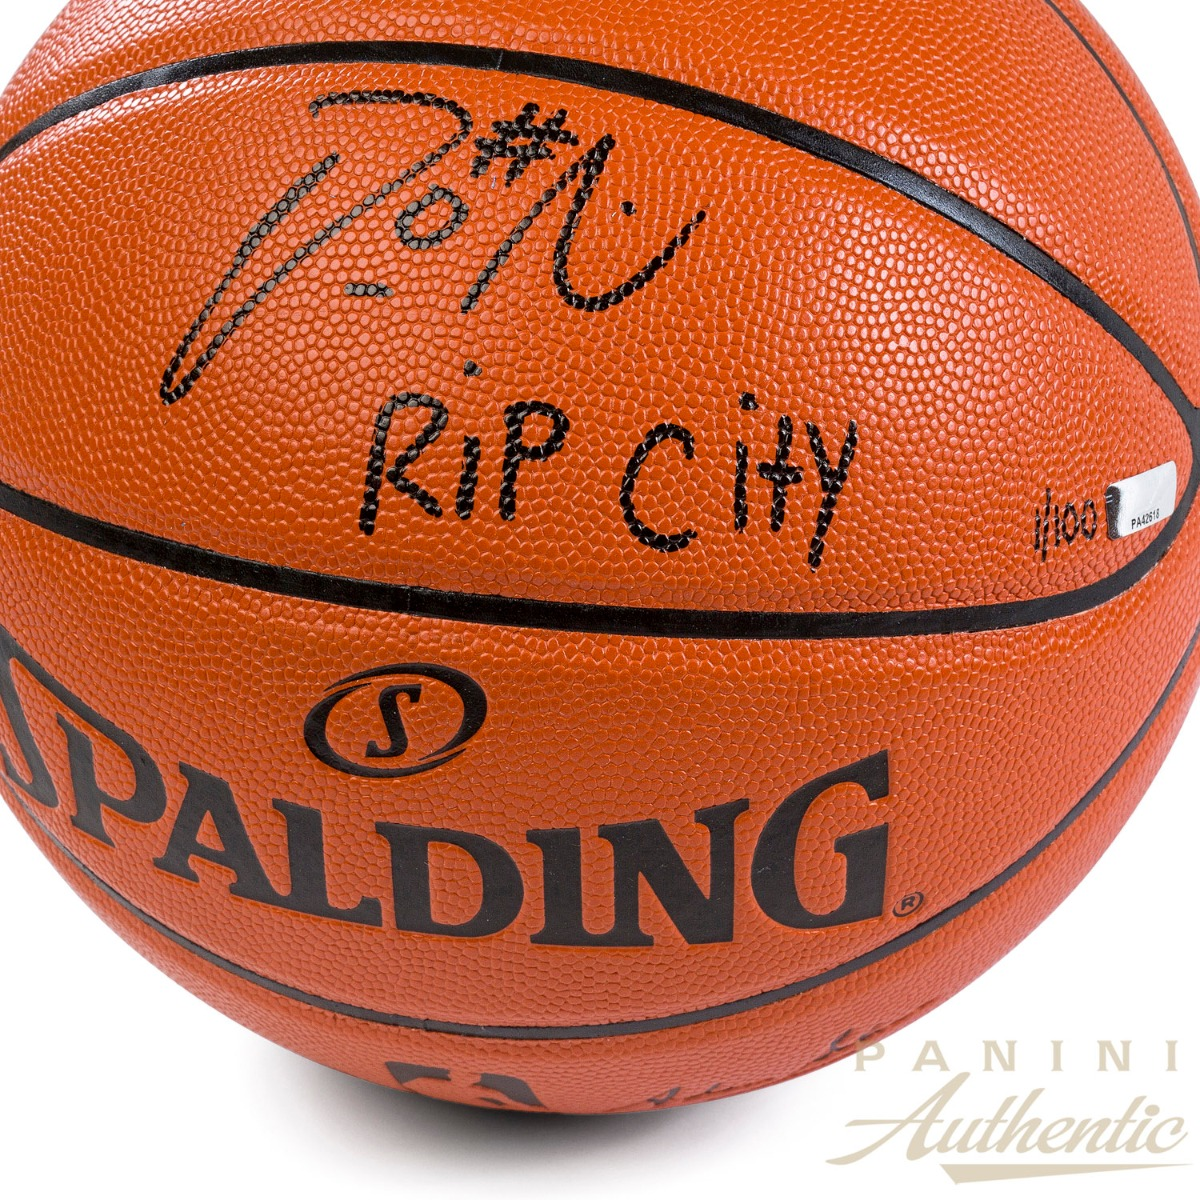 59872d90c Damian Lillard Autographed Replica Spalding Basketball with